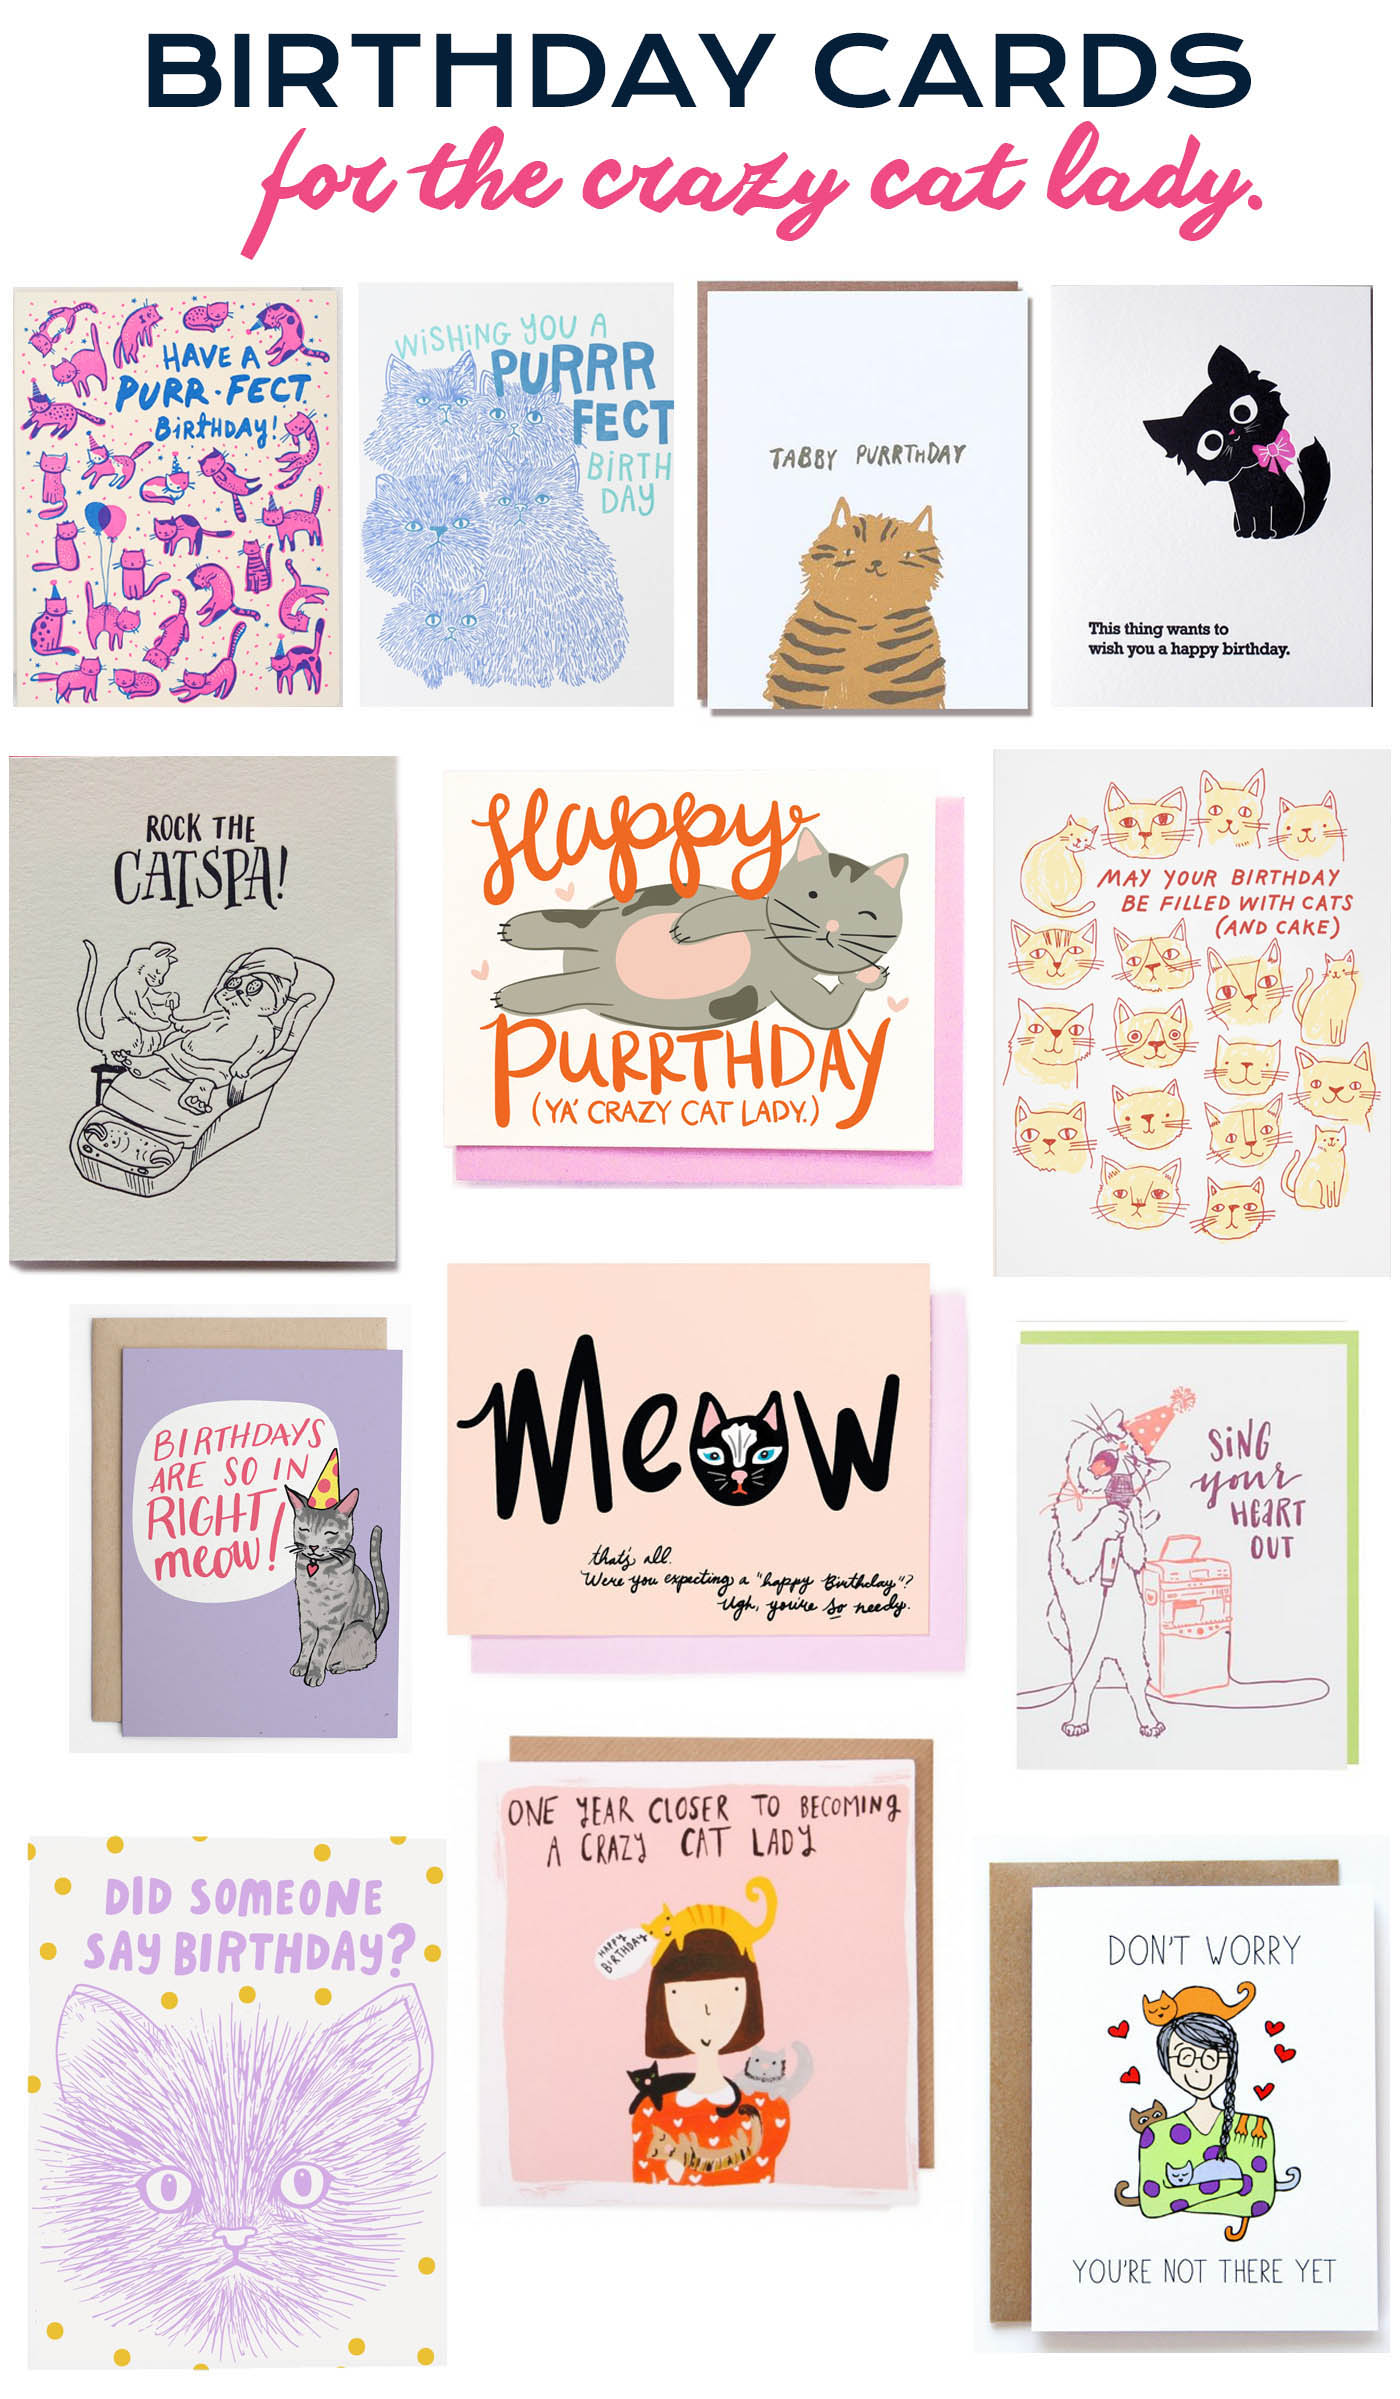 Birthday cards for the crazy cat lady.